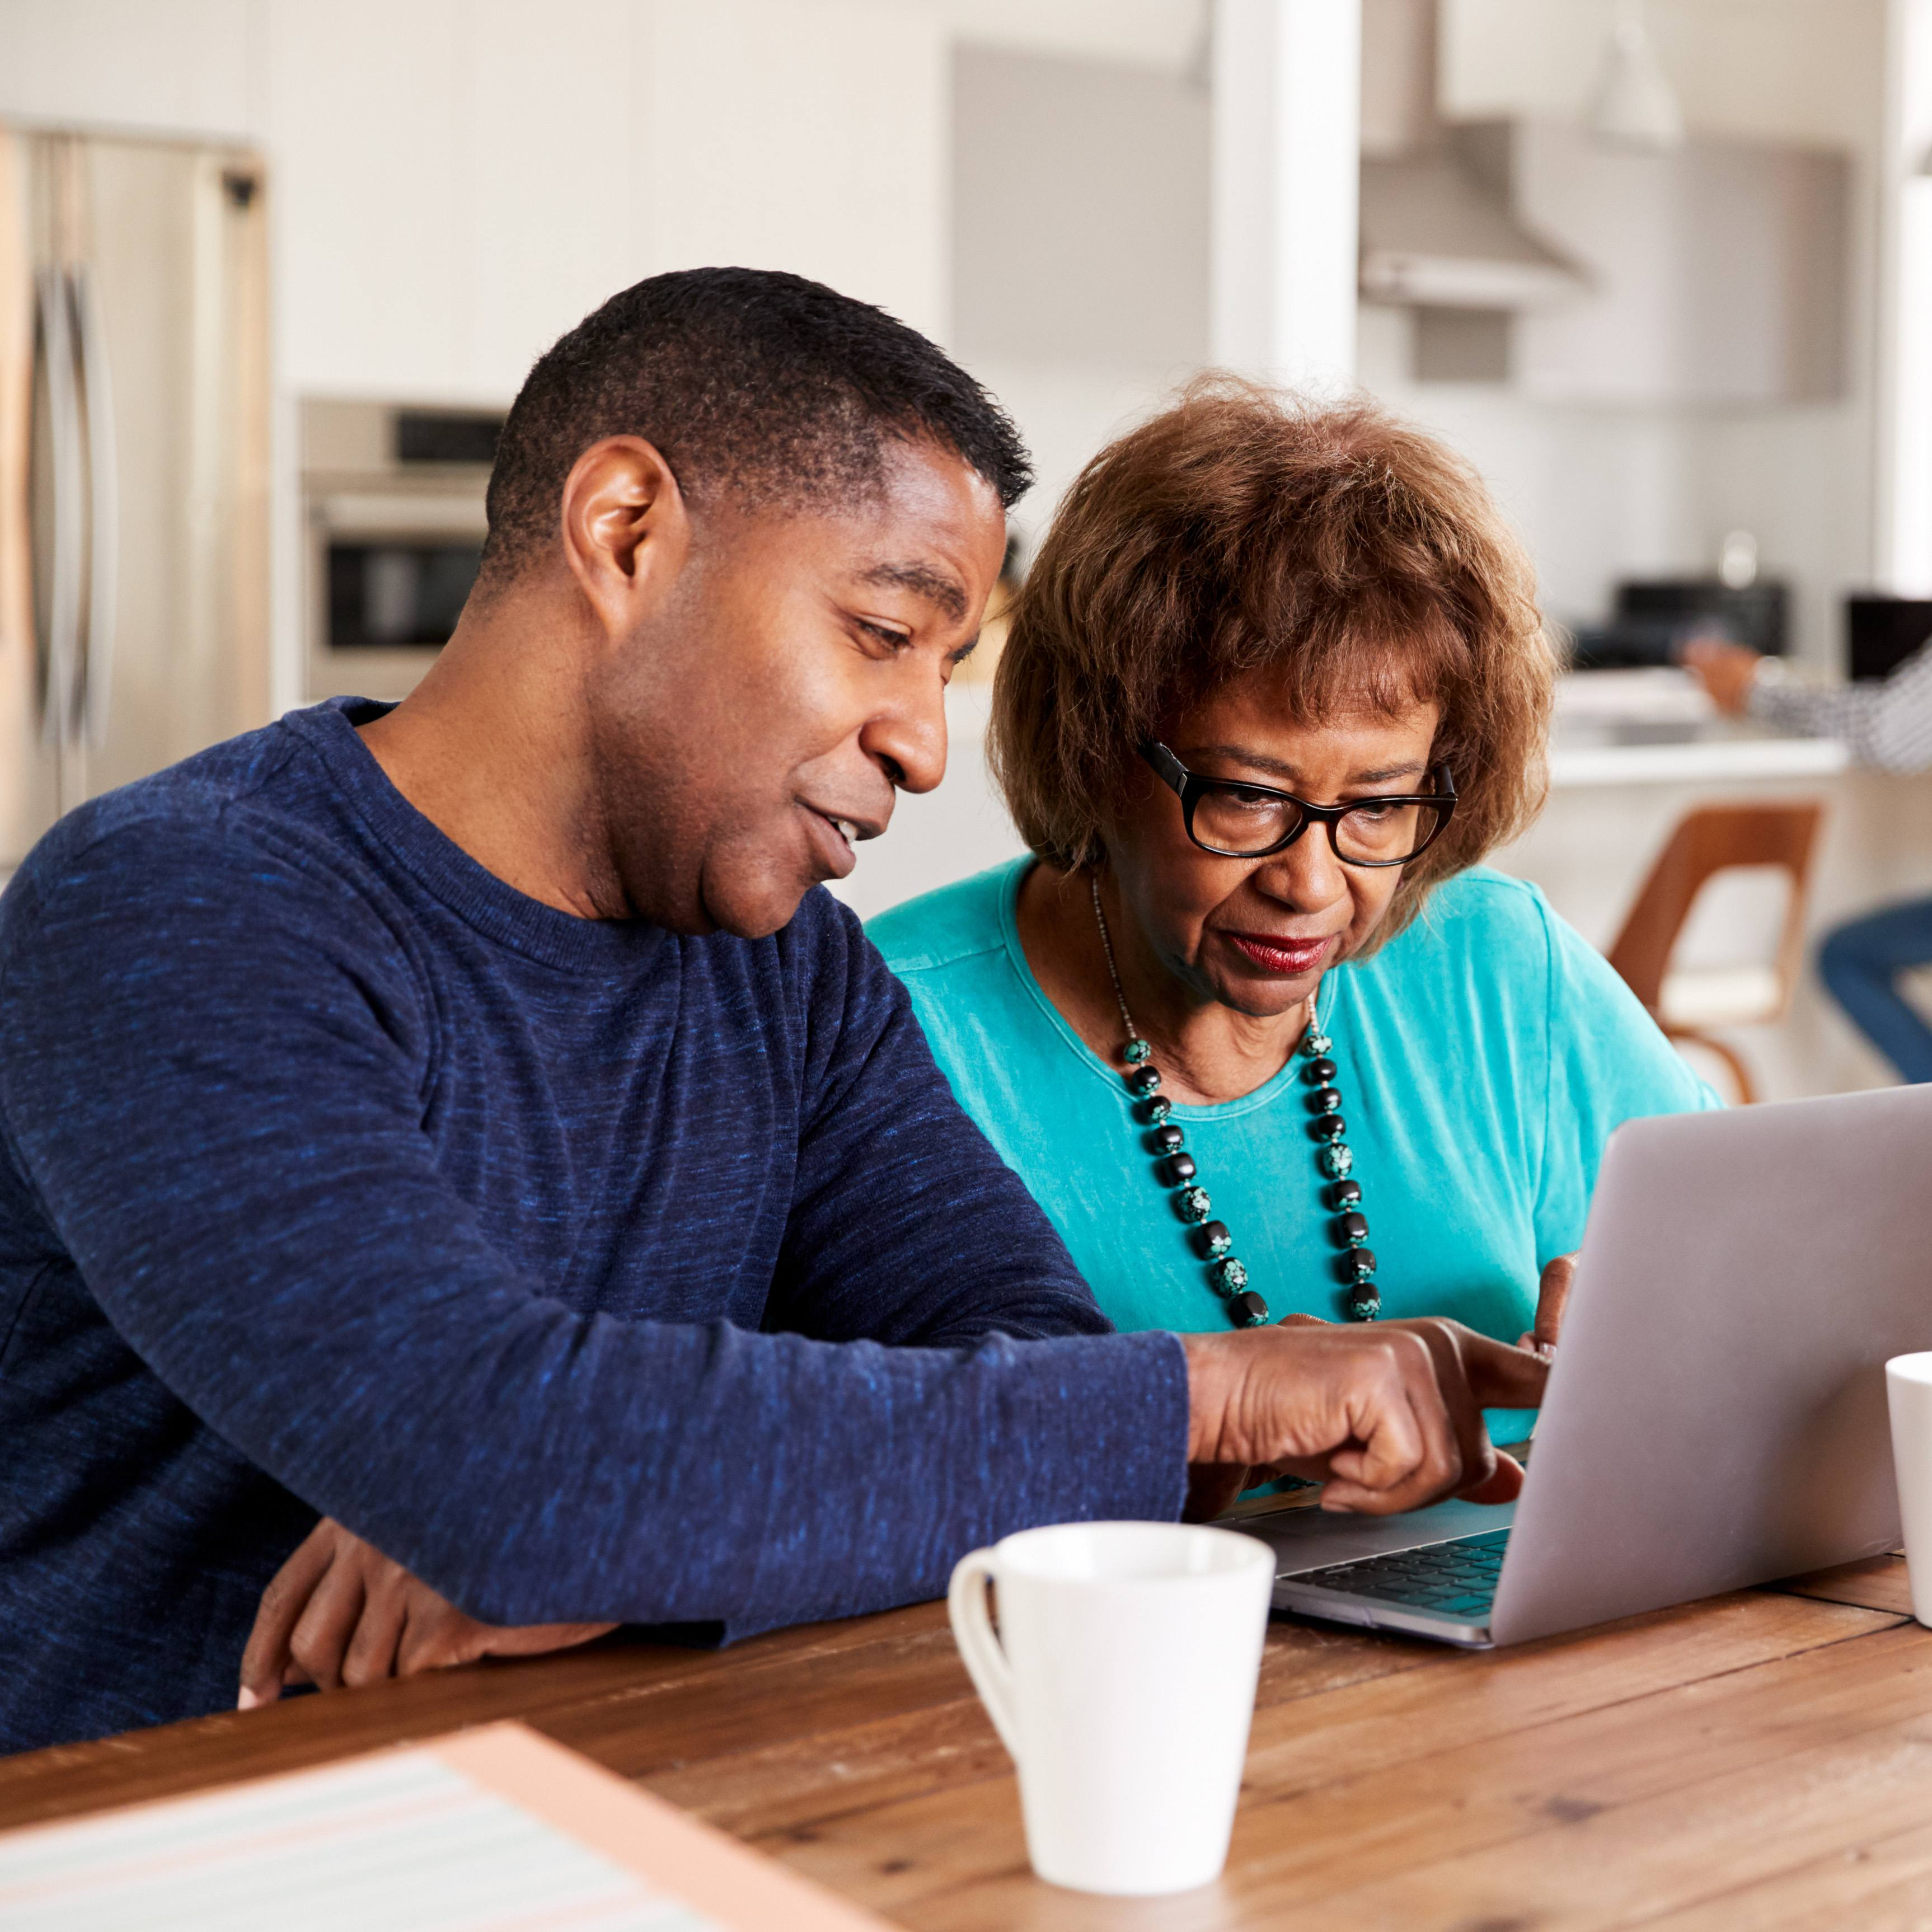 a middled-aged man helping an older woman with something on the screen of a laptop